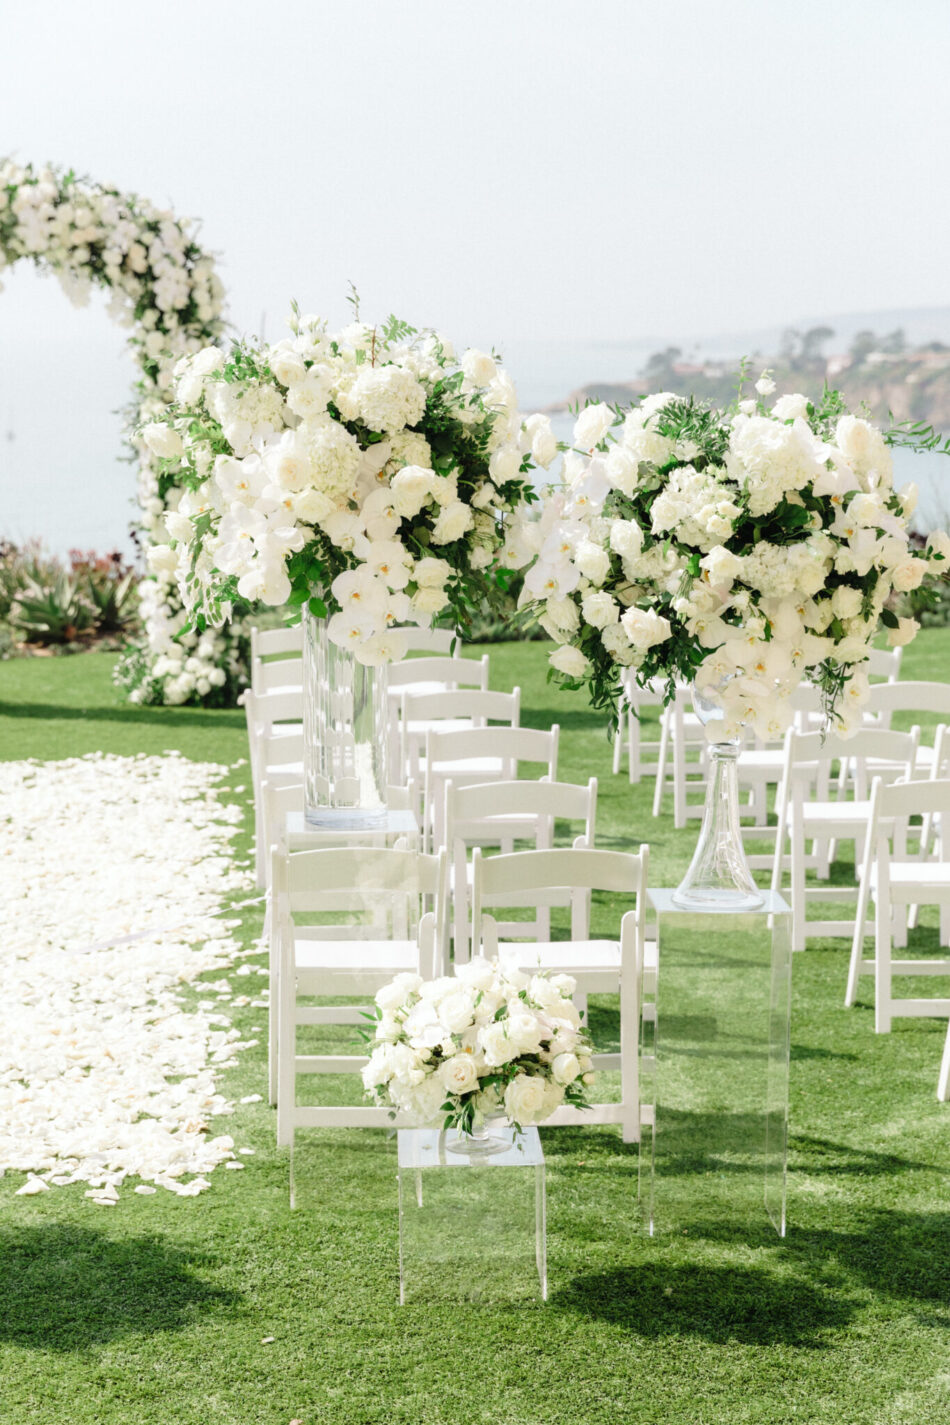 all-white ceremony, white ceremony blooms, beautiful floral-filled wedding, floral design, florist, wedding florist, wedding flowers, orange county weddings, orange county wedding florist, orange county florist, orange county floral design, flowers by cina